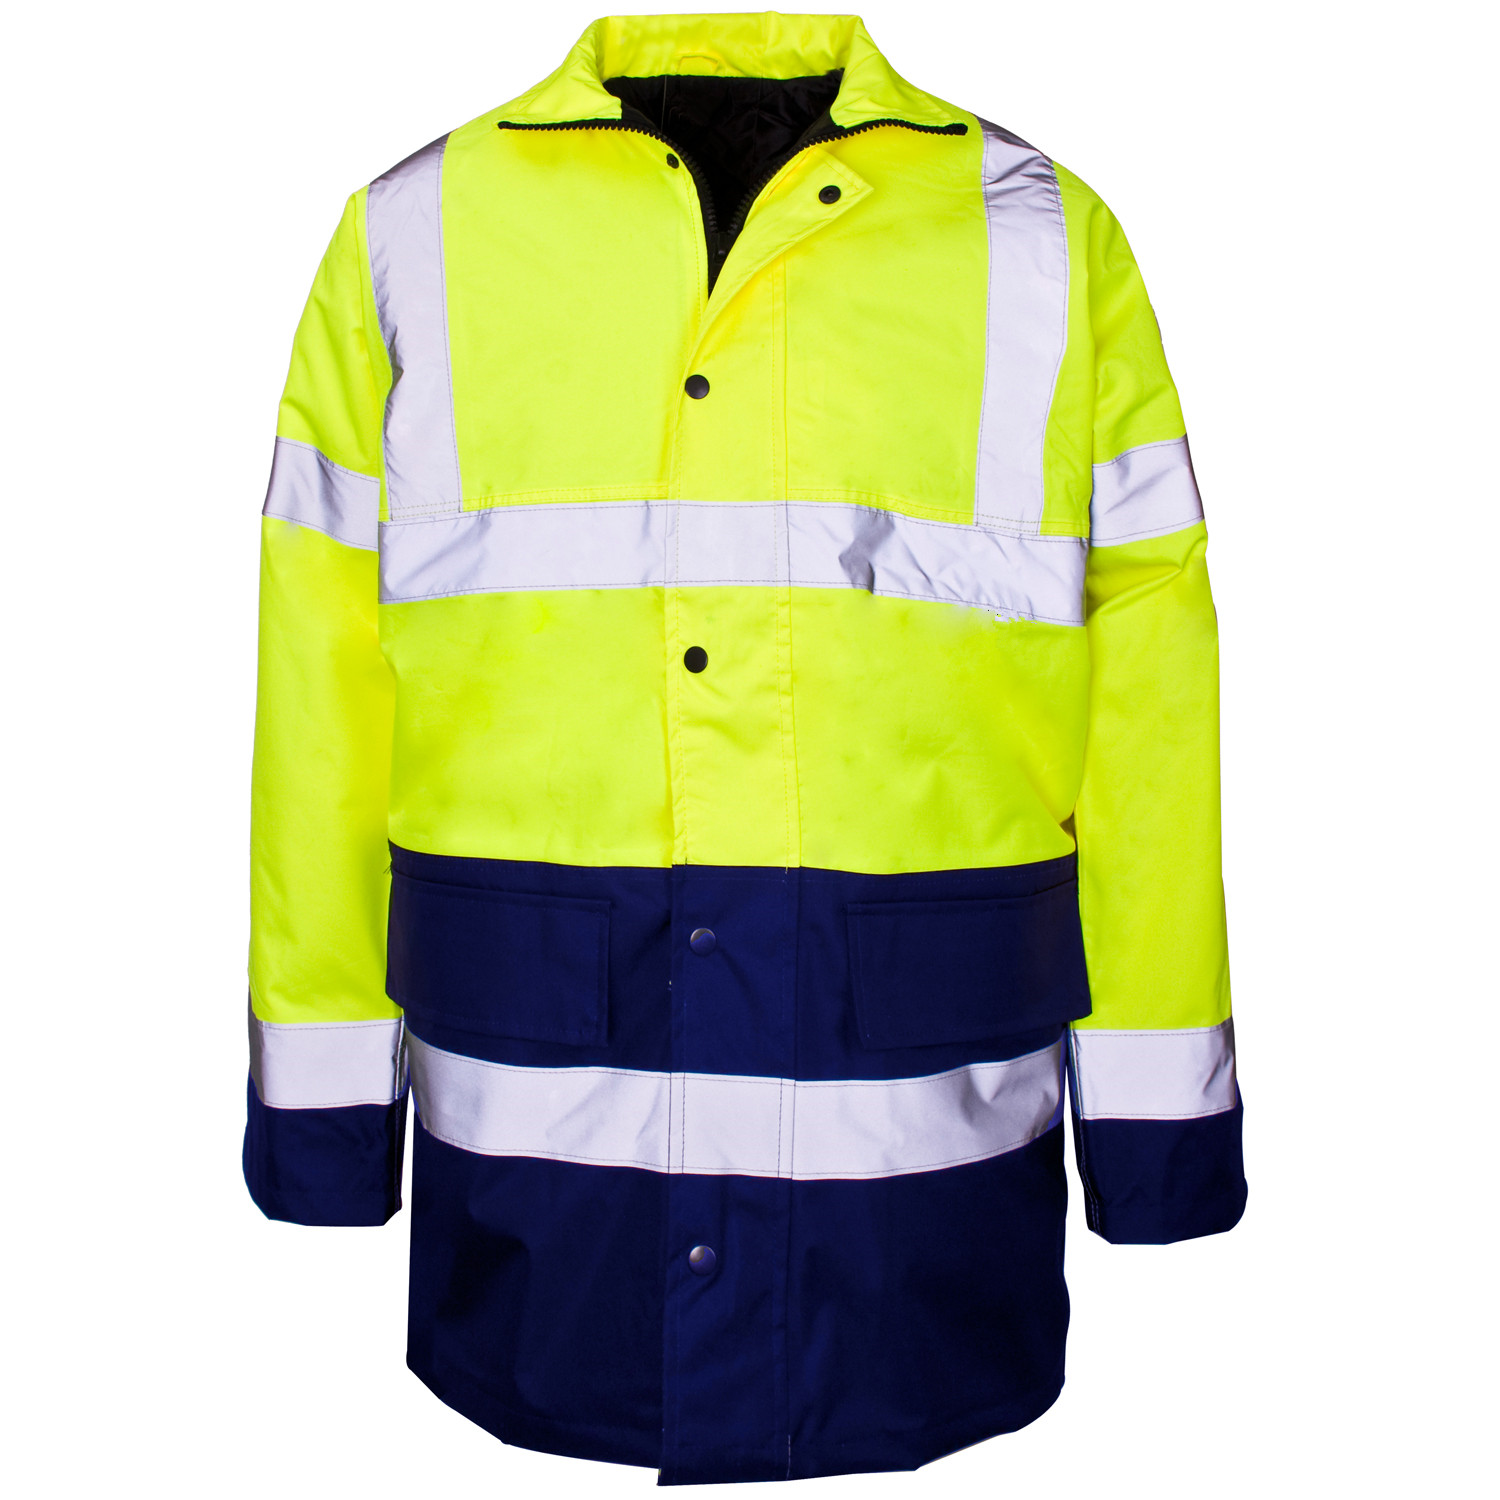 High Visibility Reflective Safety Jacket For Unisex Adults Uniform( HJ-2469 )